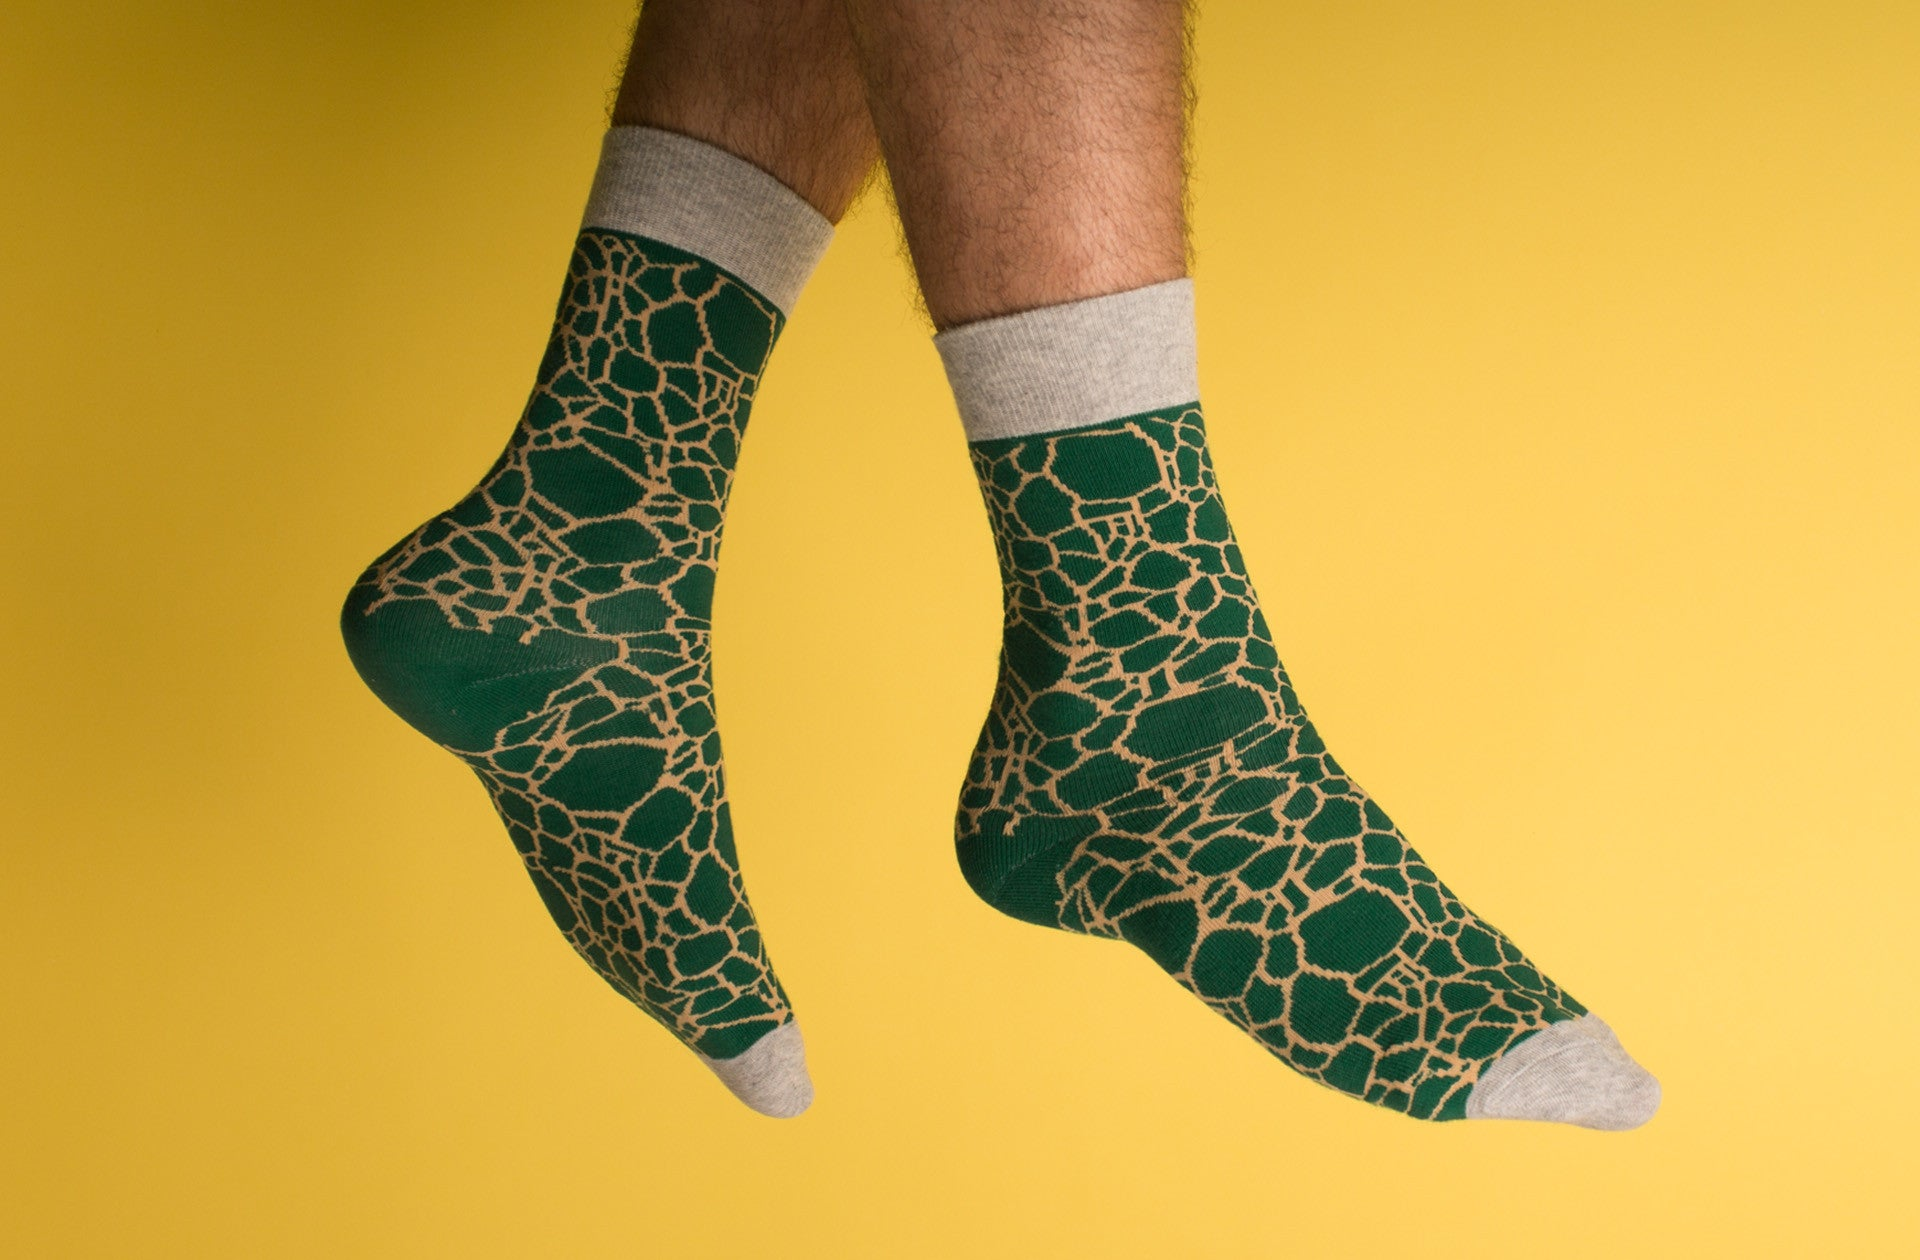 Monthly Fresh Sock Subscription - Free Christmas Socks